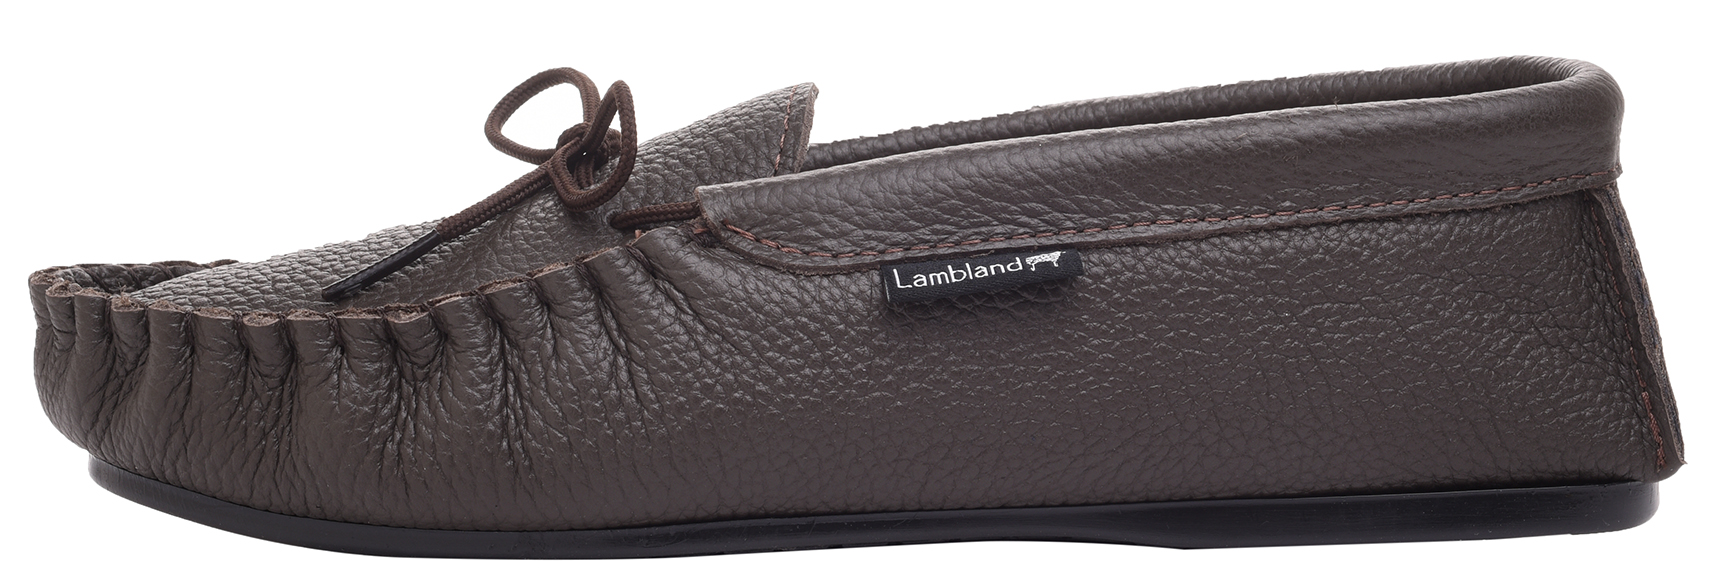 Leather-Moccasin-Slippers-UK-Made-for-Men-and-Ladies-Cotton-Lining-by-Lambland thumbnail 12